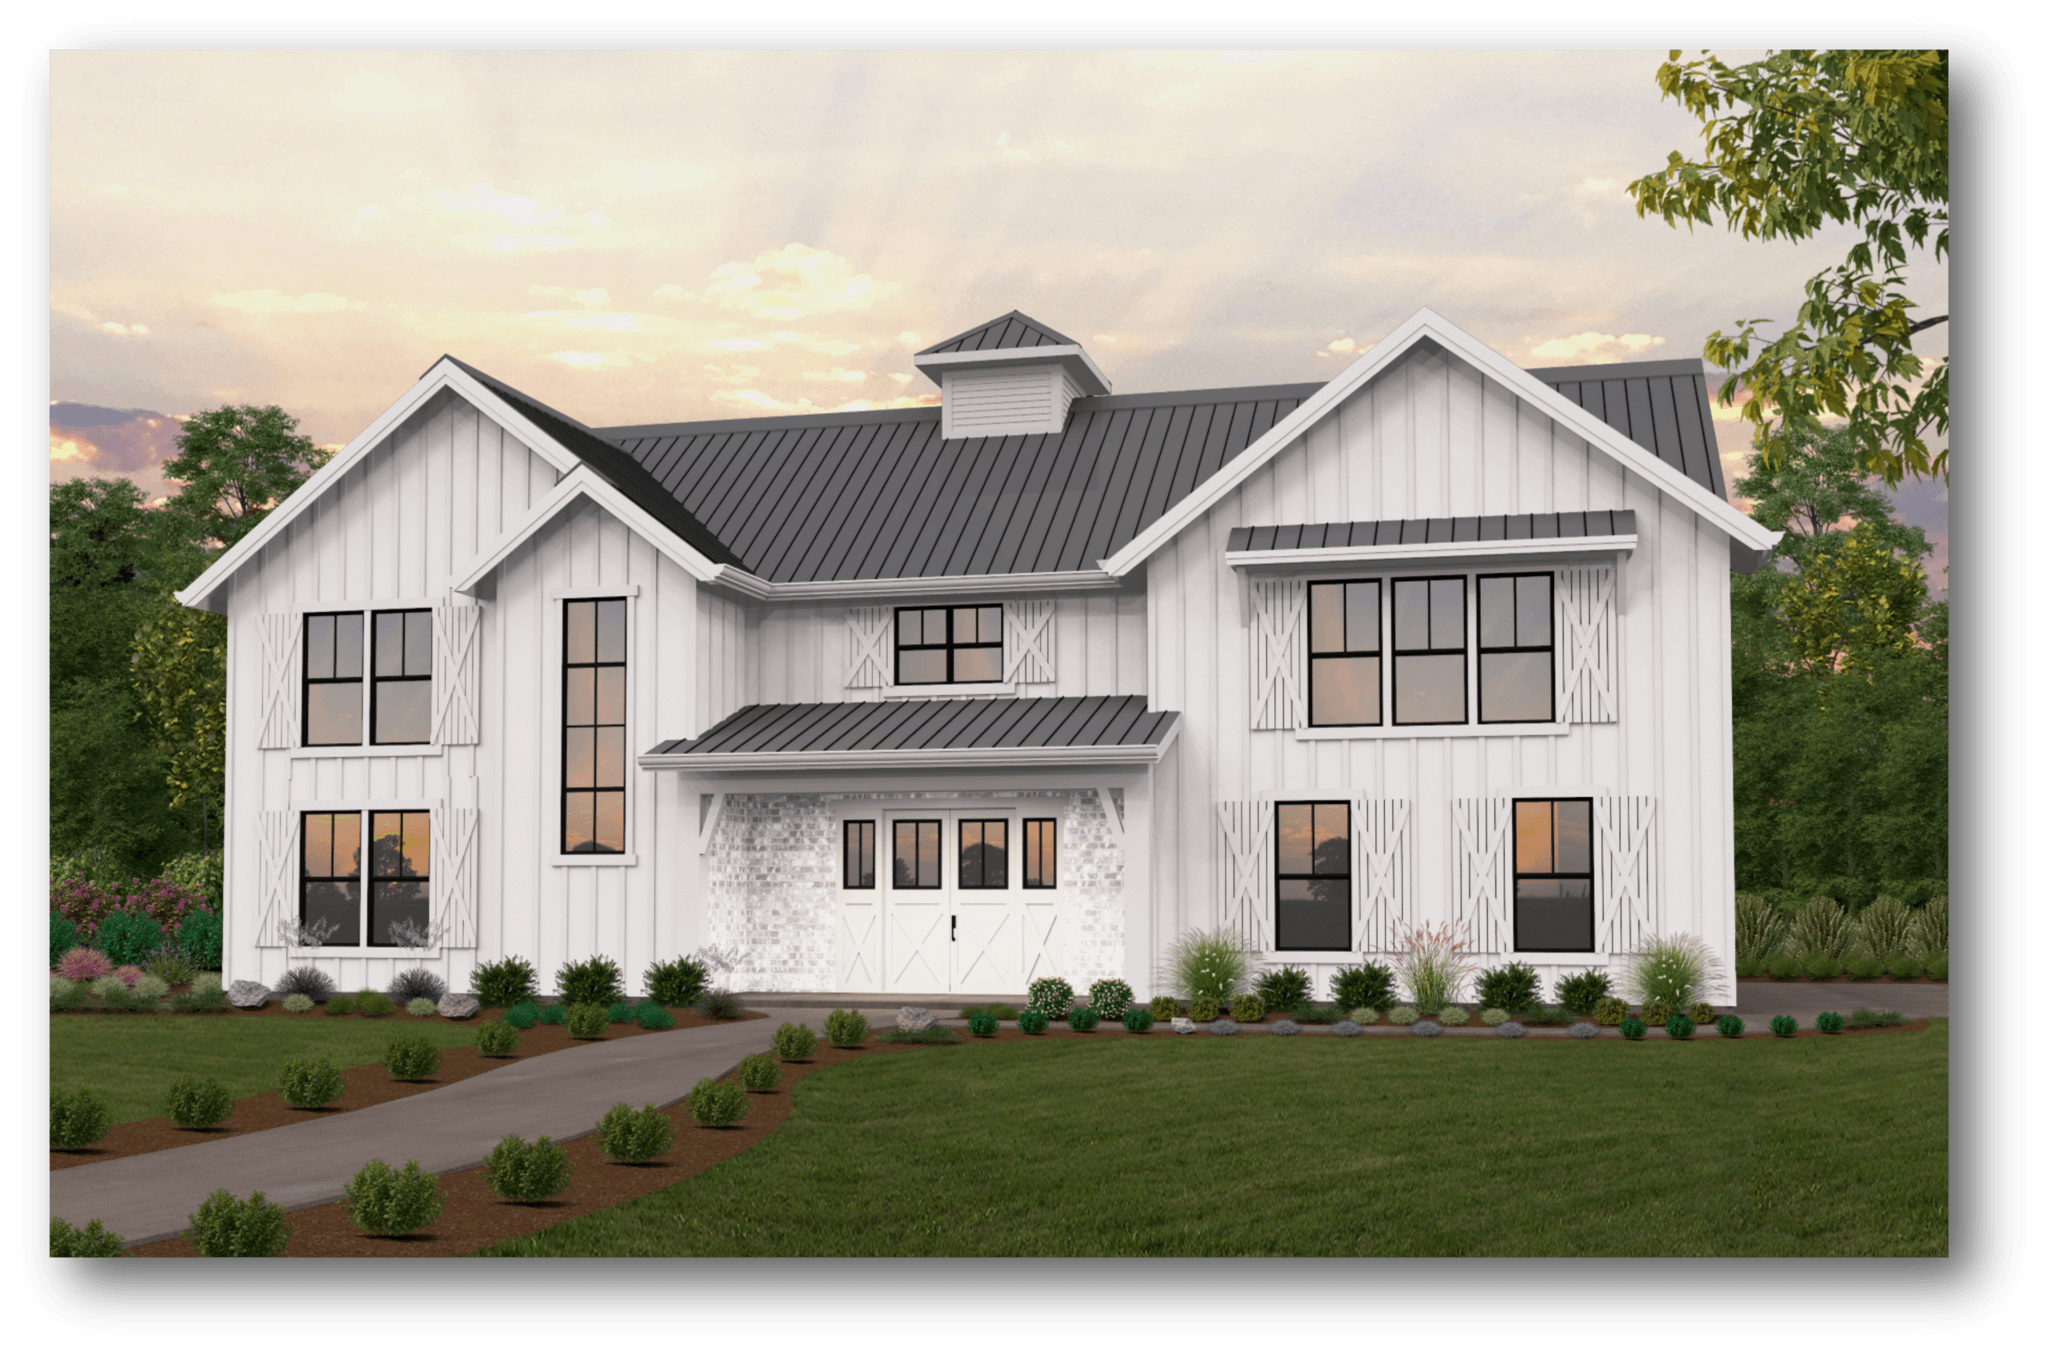 Township | Barn House Plan by Mark Stewart Home Design